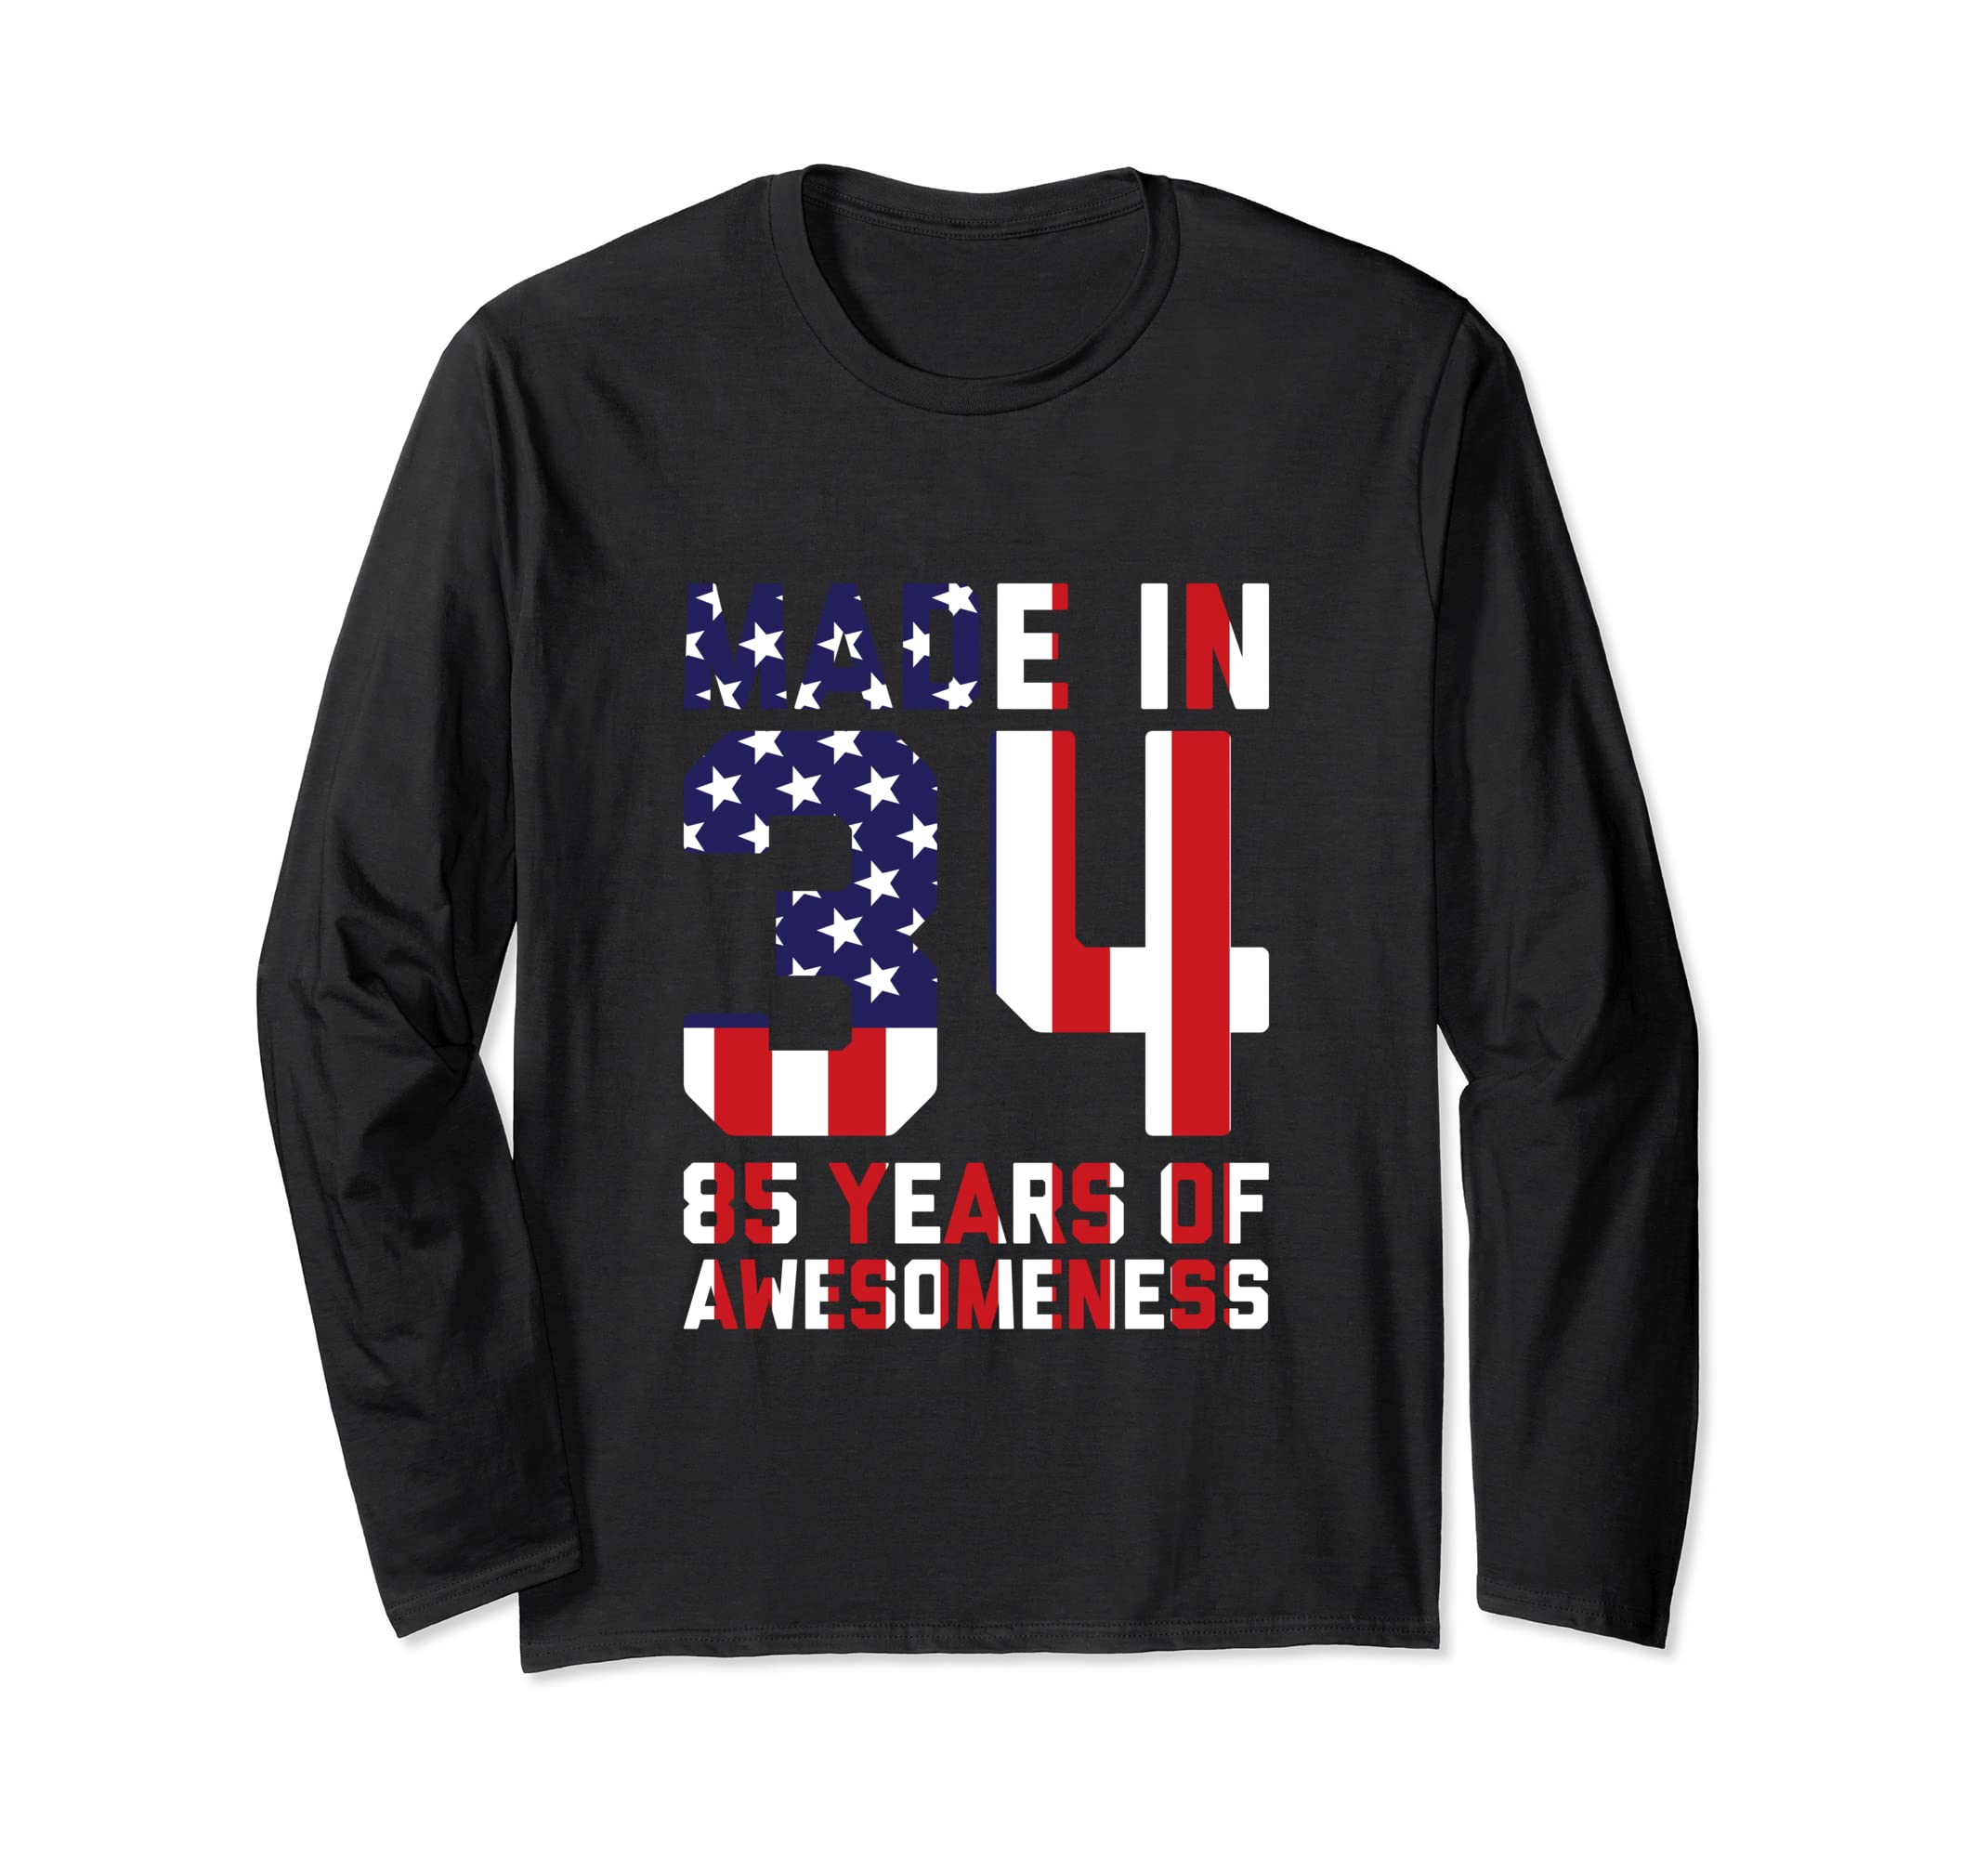 Amazon 85th Birthday Long Sleeve Gifts Men Age 85 Year Old Grandpa Clothing